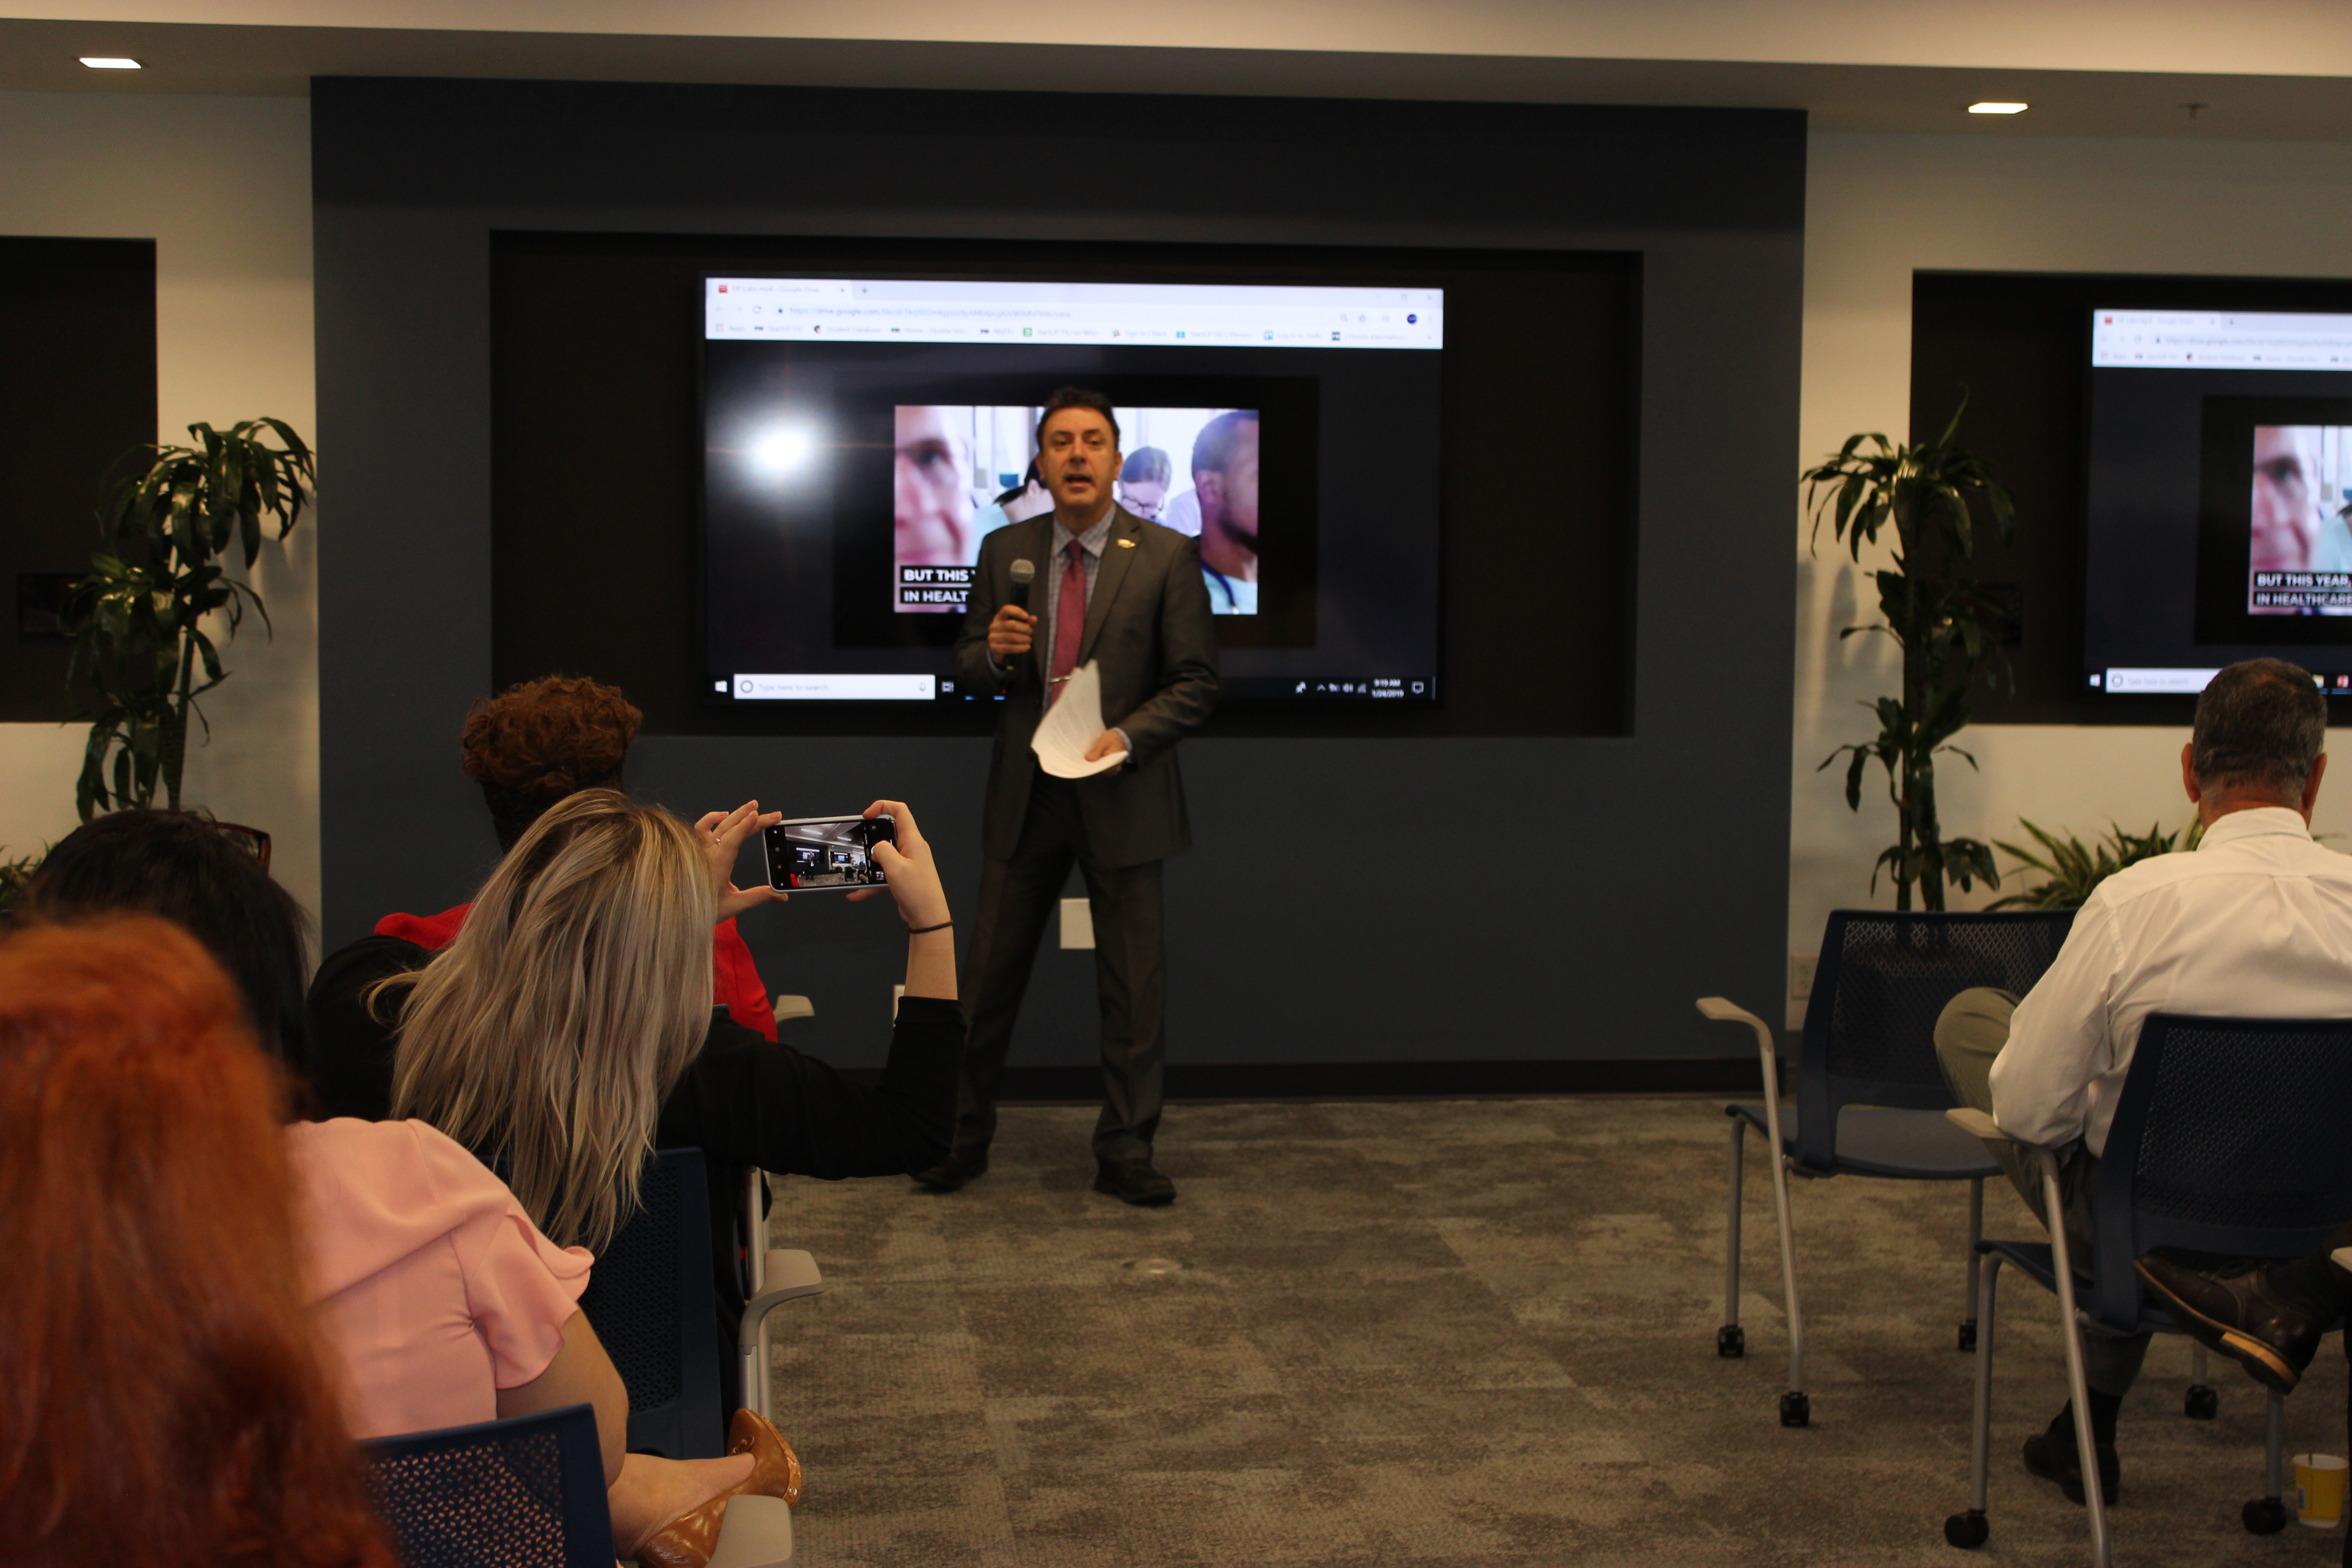 Doral Chamber of Commerce introduces DCC 21st Century Technology event, host talking to people about the newest technology.